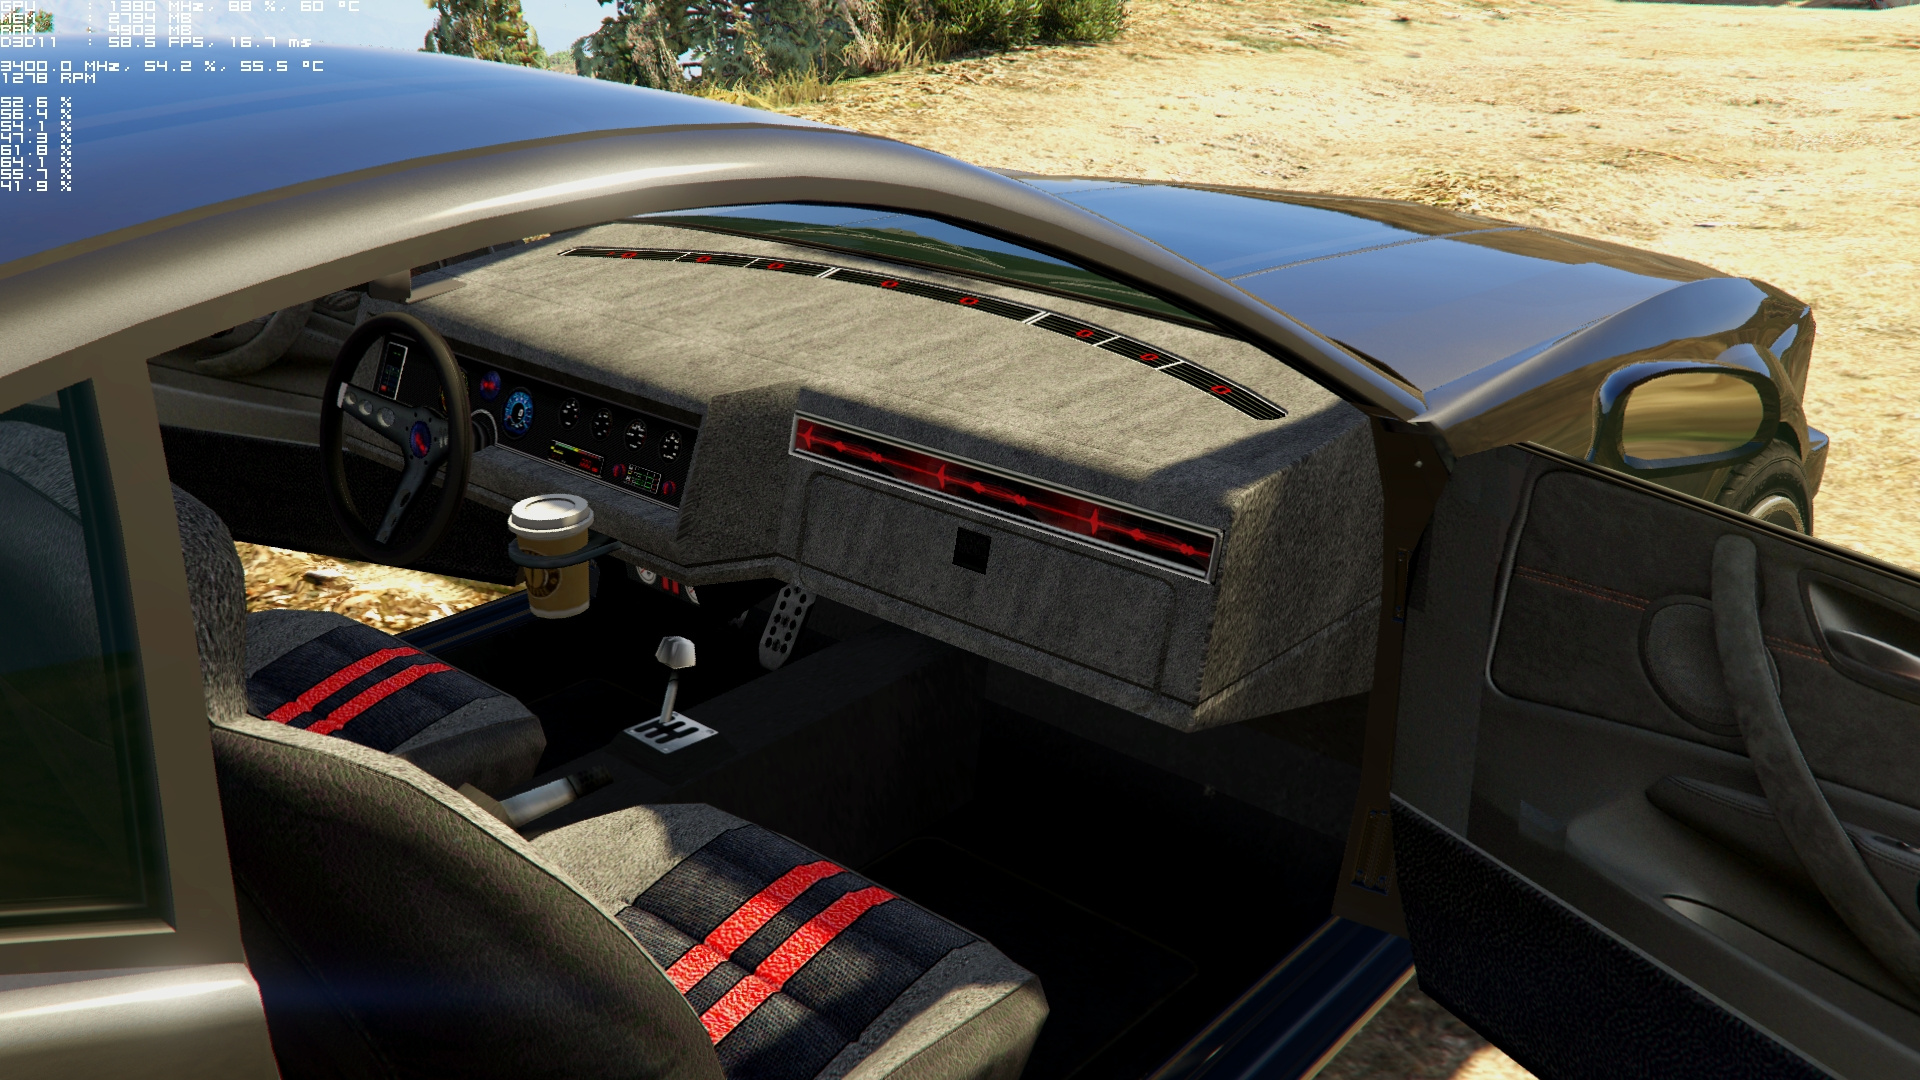 dominator hd textures for knight rider mod gta5. Black Bedroom Furniture Sets. Home Design Ideas